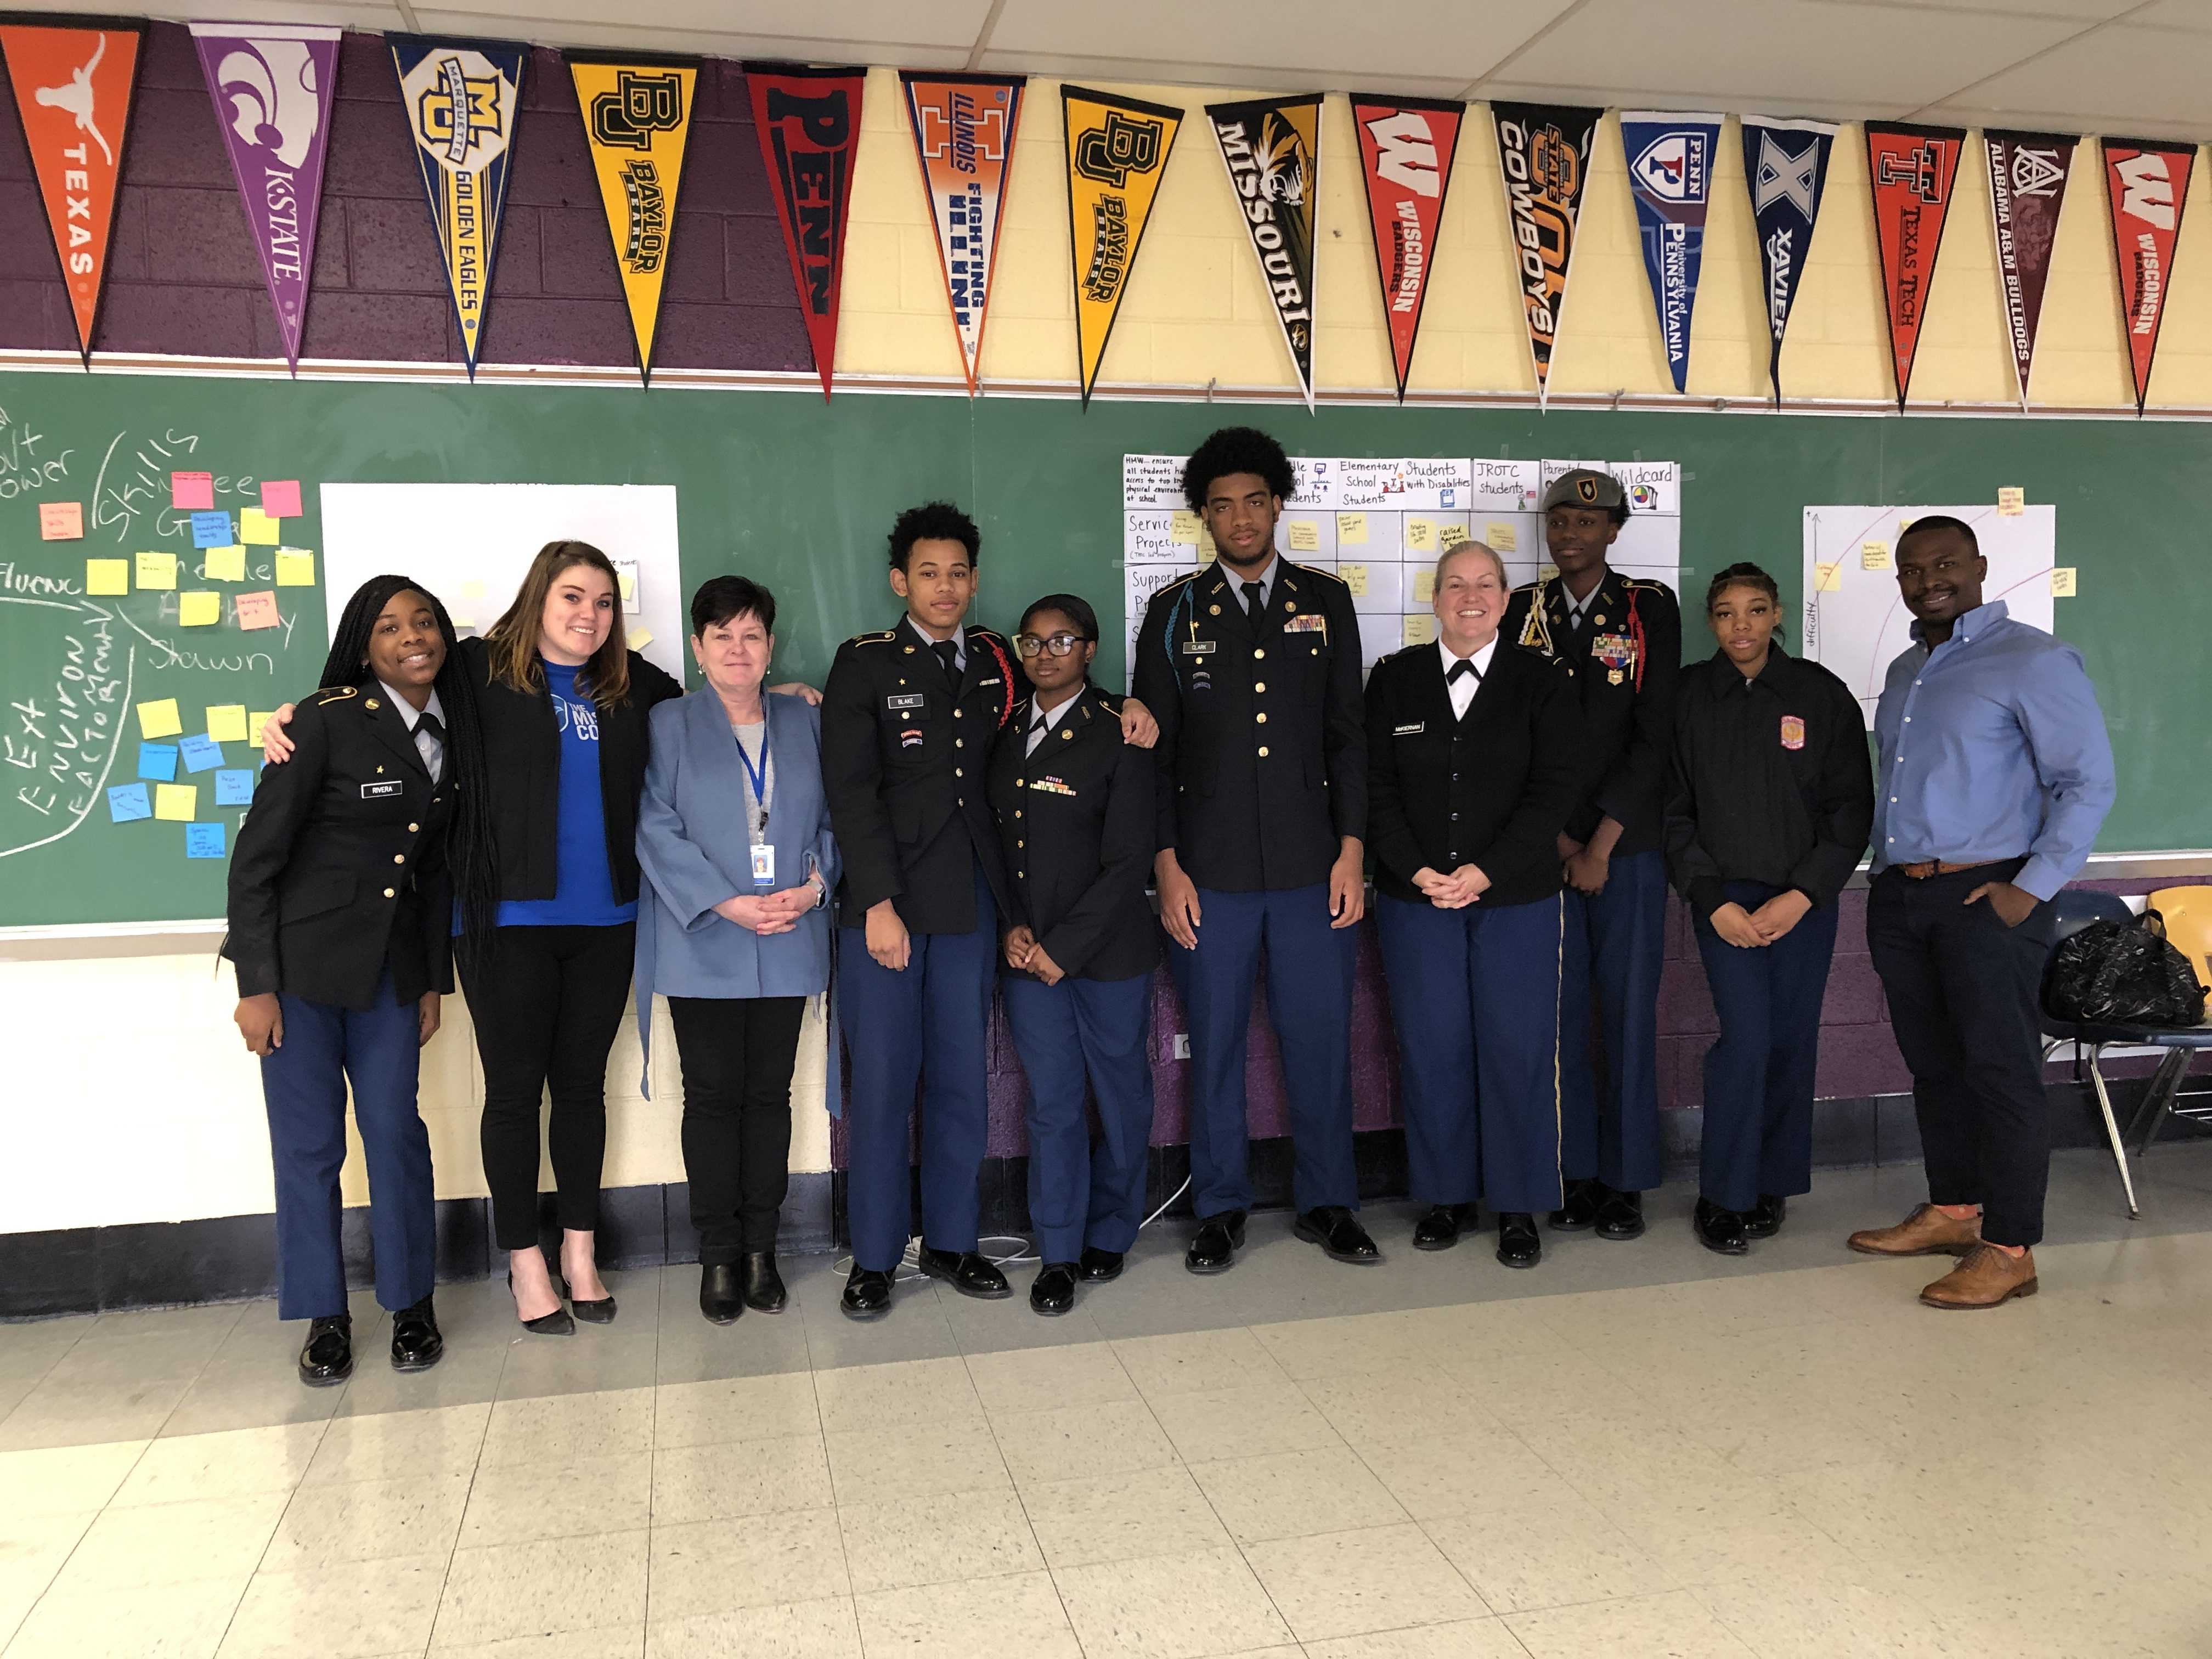 Philadelphia 1st Service Platoon Expands Operation with the Help of JROTC Students